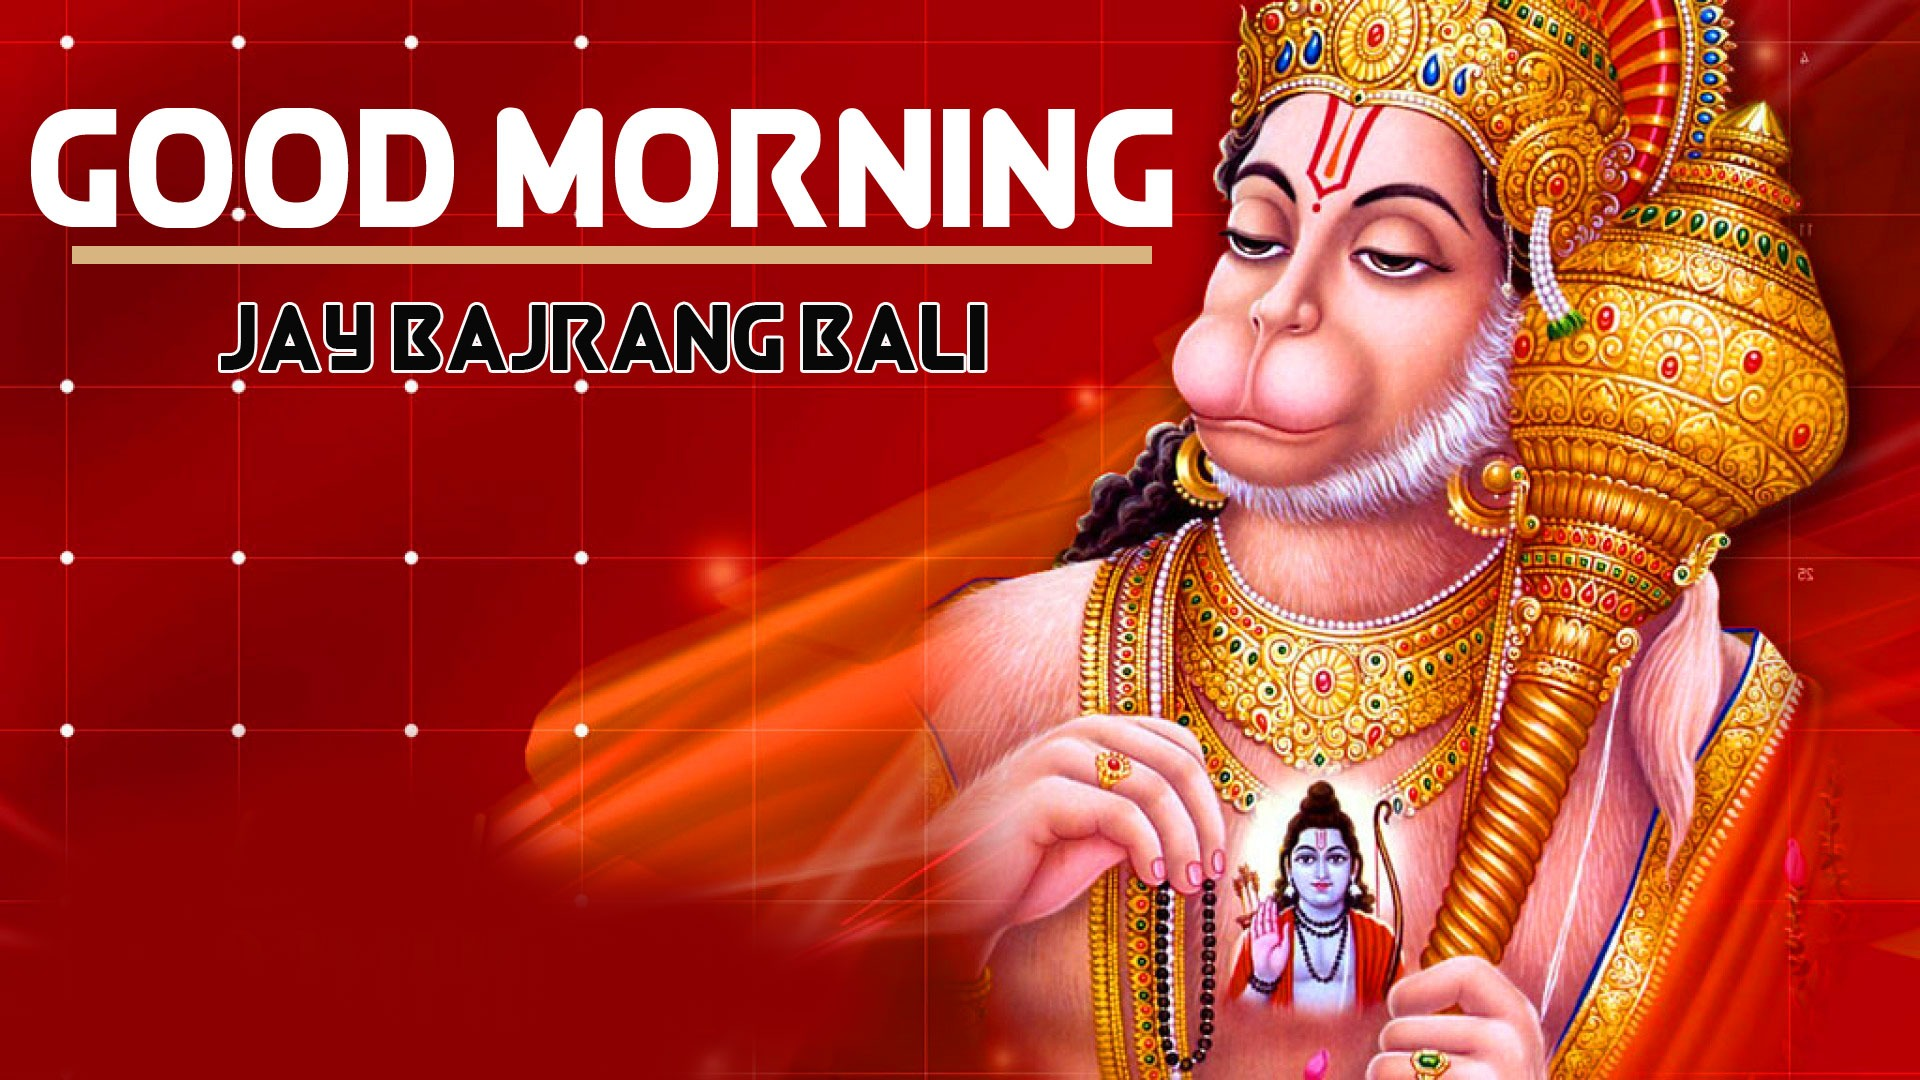 Hanuman Ji Good Morning Images Pics for Facebook